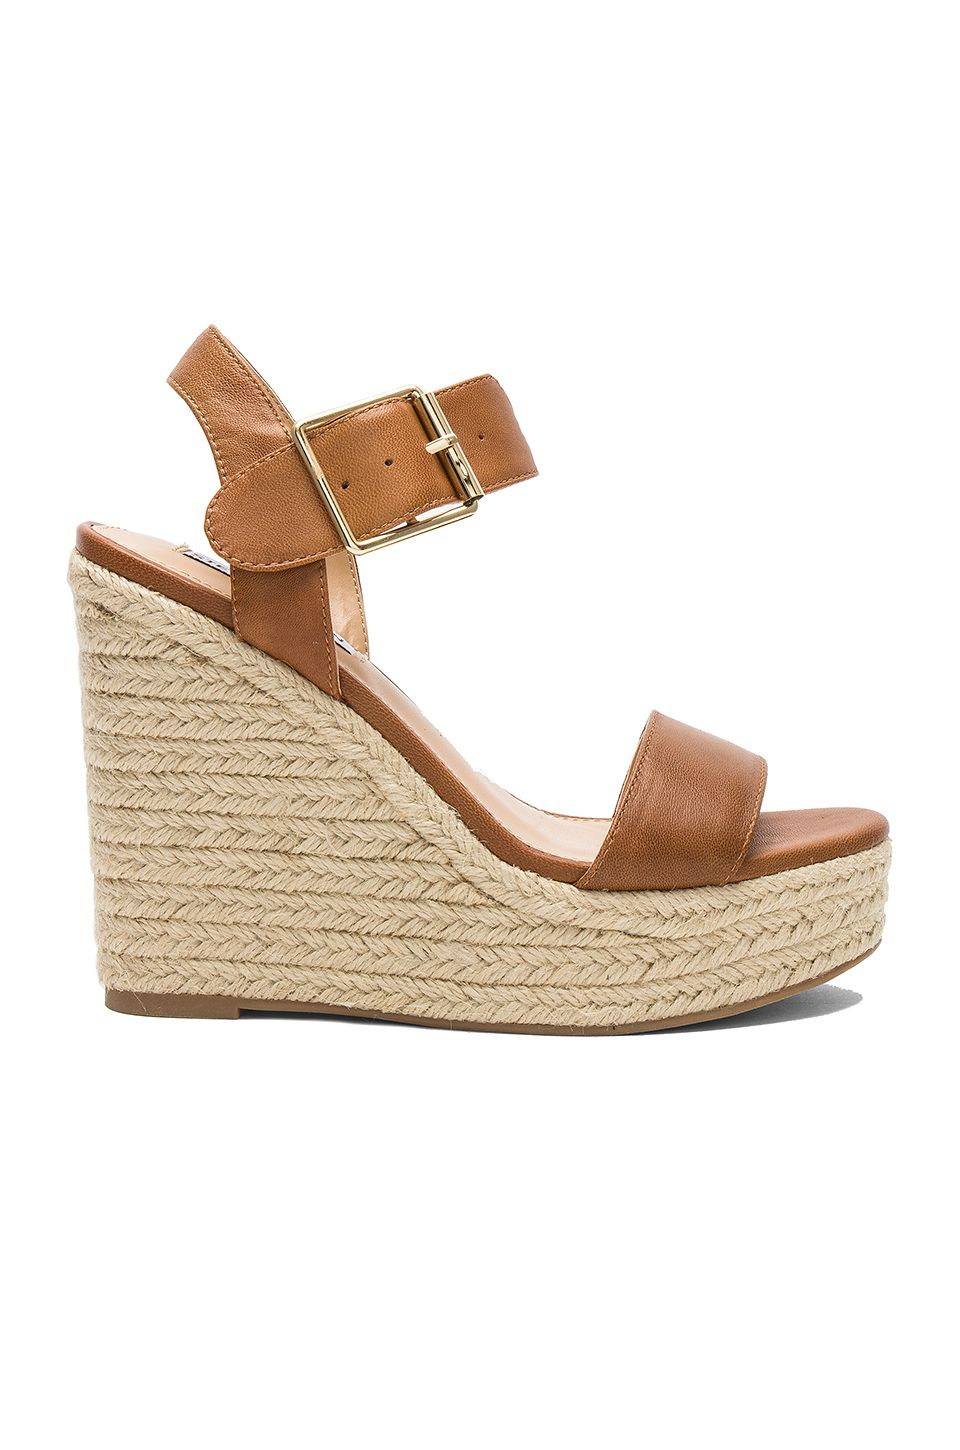 a2f89caa8db Steve Madden Santorini Sandal in Cognac Leather | Wedges in 2019 ...